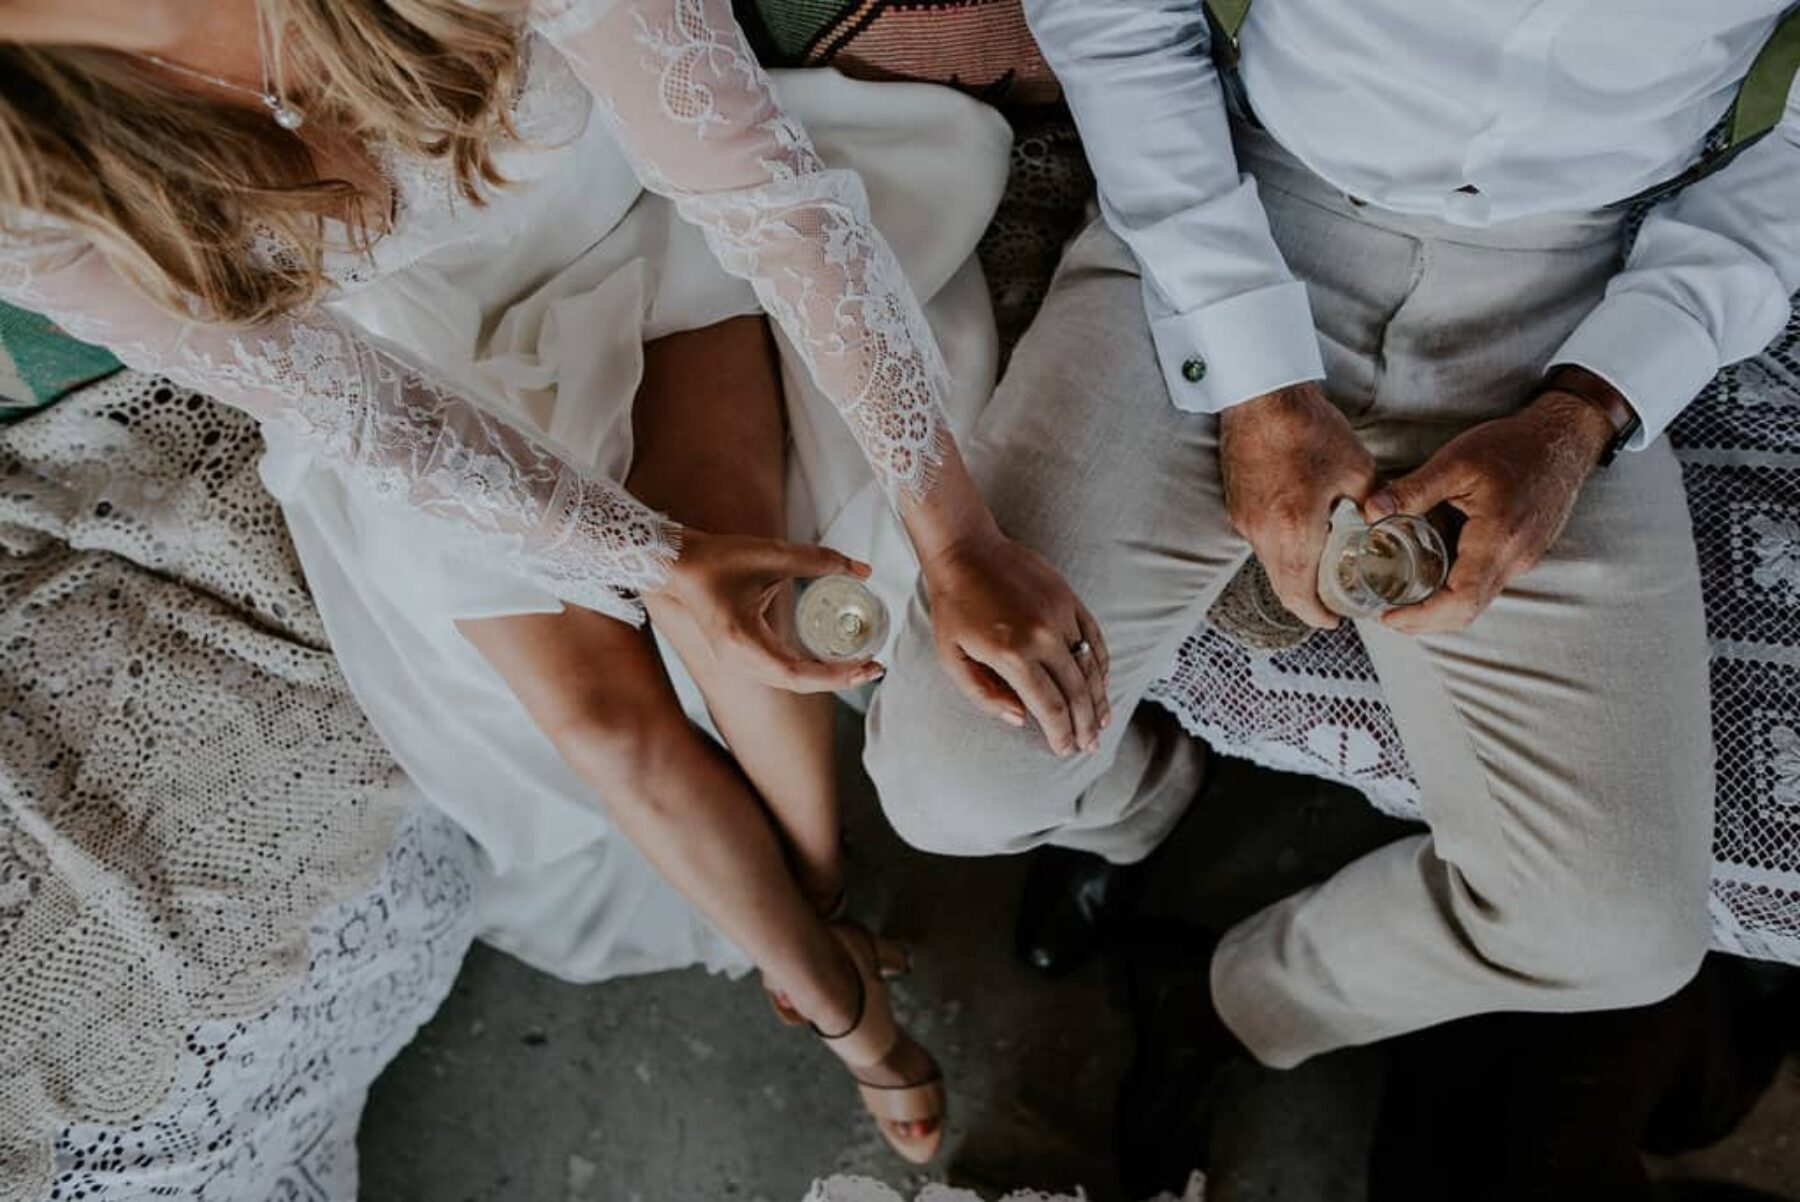 carefree country wedding at St Joseph's Guesthouse - Scott Surplice photography